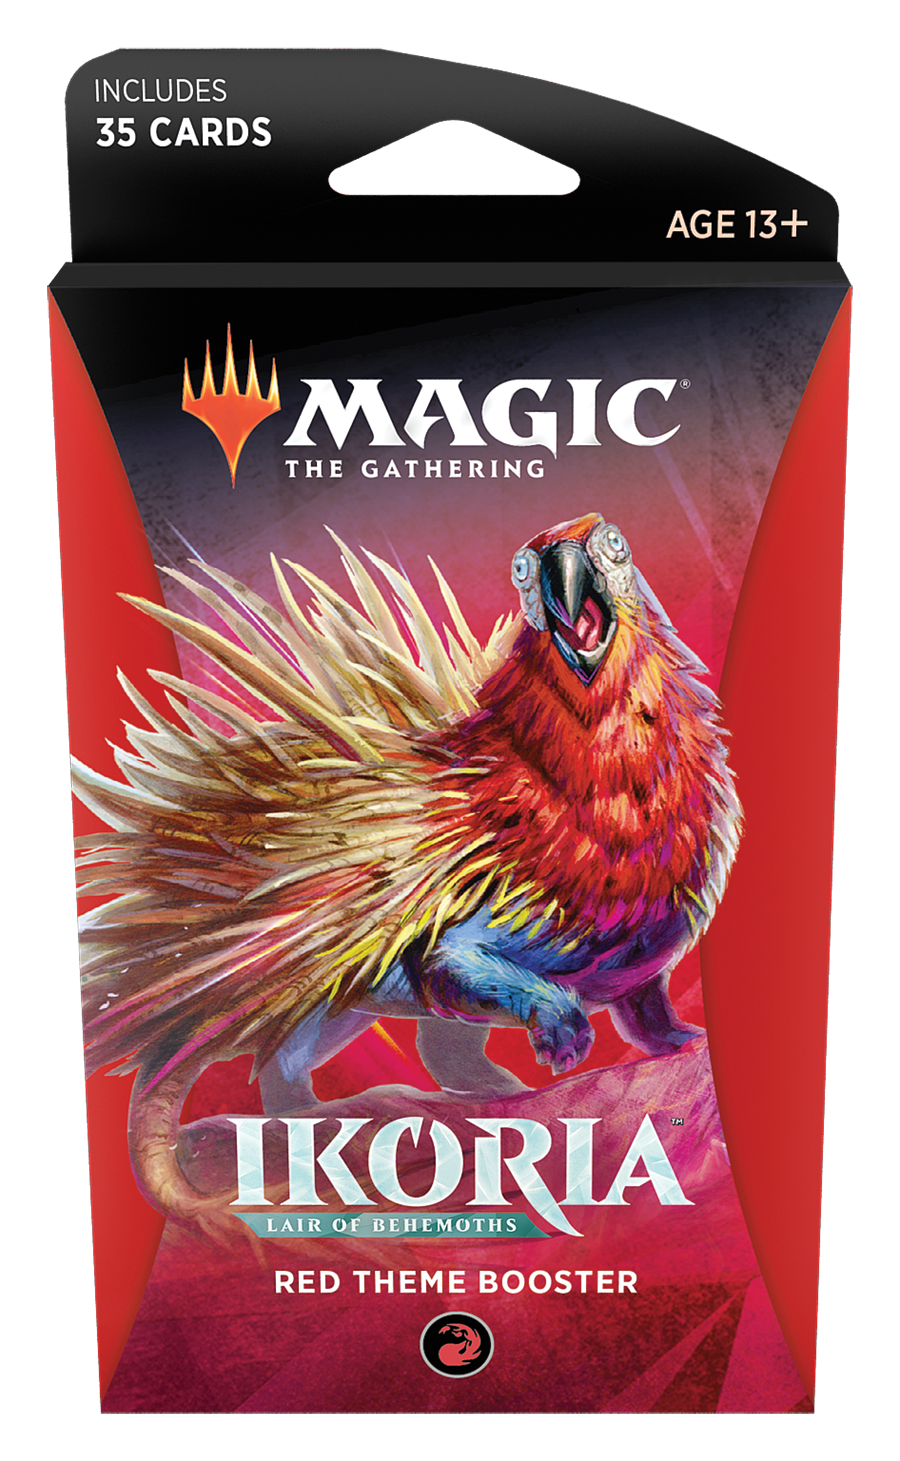 Magic the Gathering: Ikoria: Lair of Behemoths - Theme Booster Red image